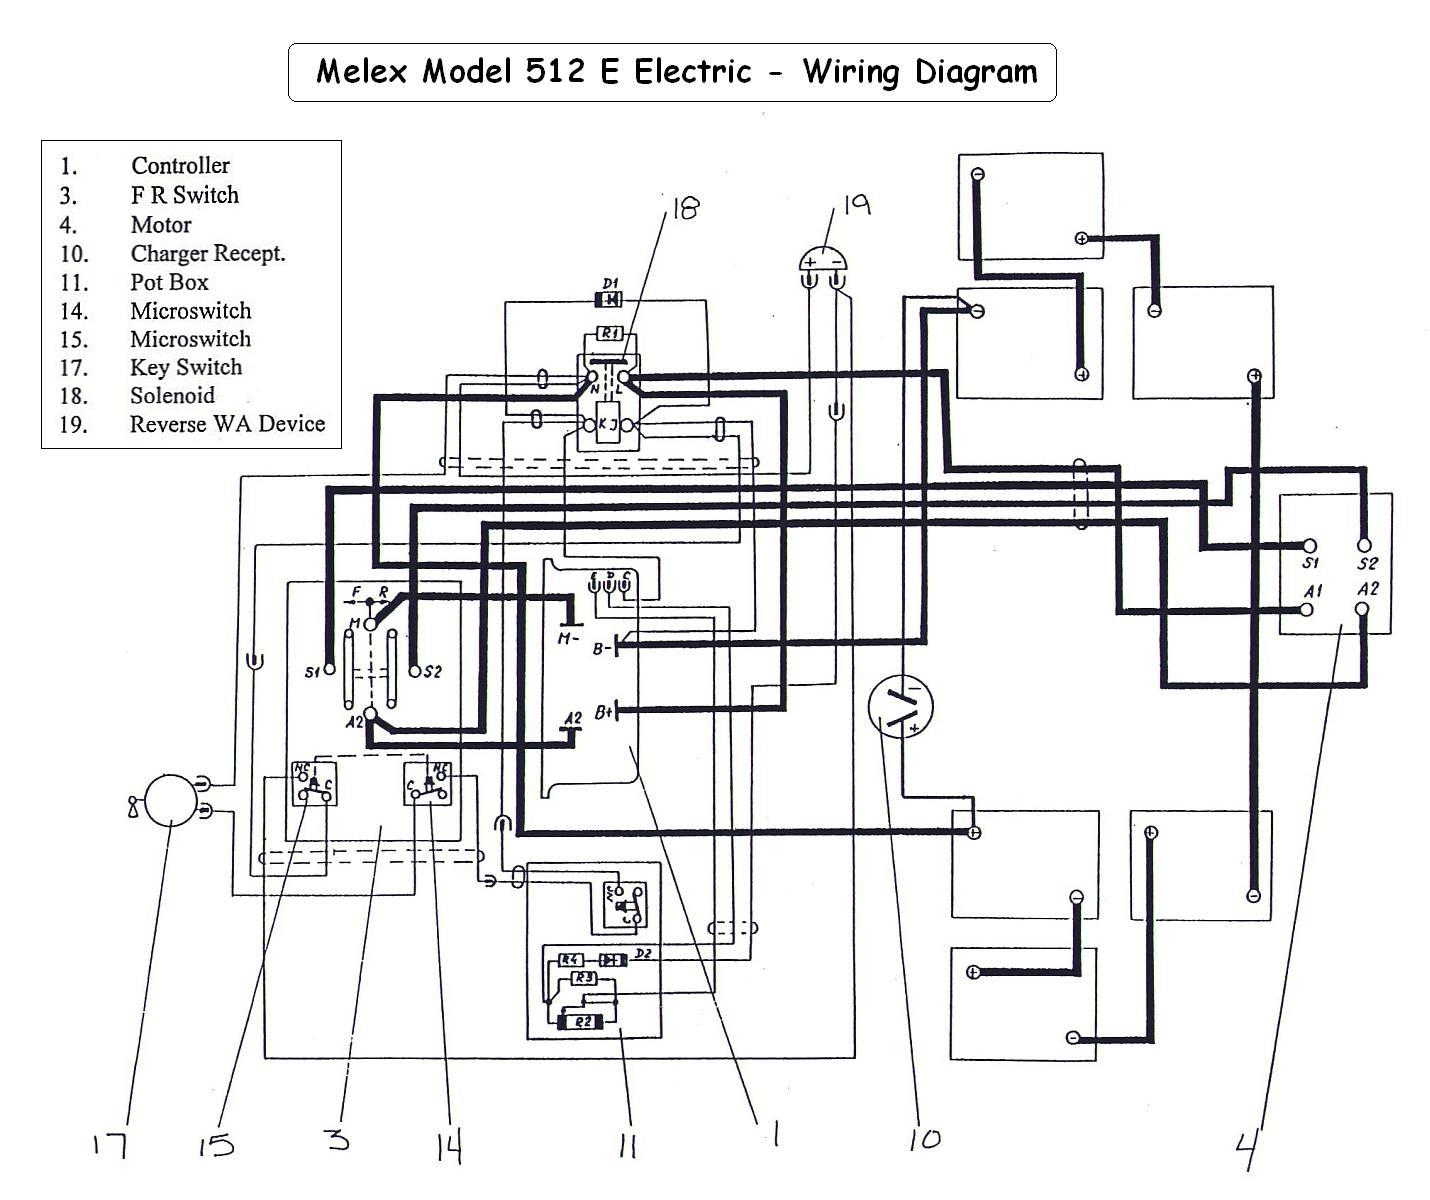 hight resolution of melex electric golf cart 6 volt wiring diagram wiring diagram todays 1995 ez go wiring diagram ez go 6 volt wiring diagram